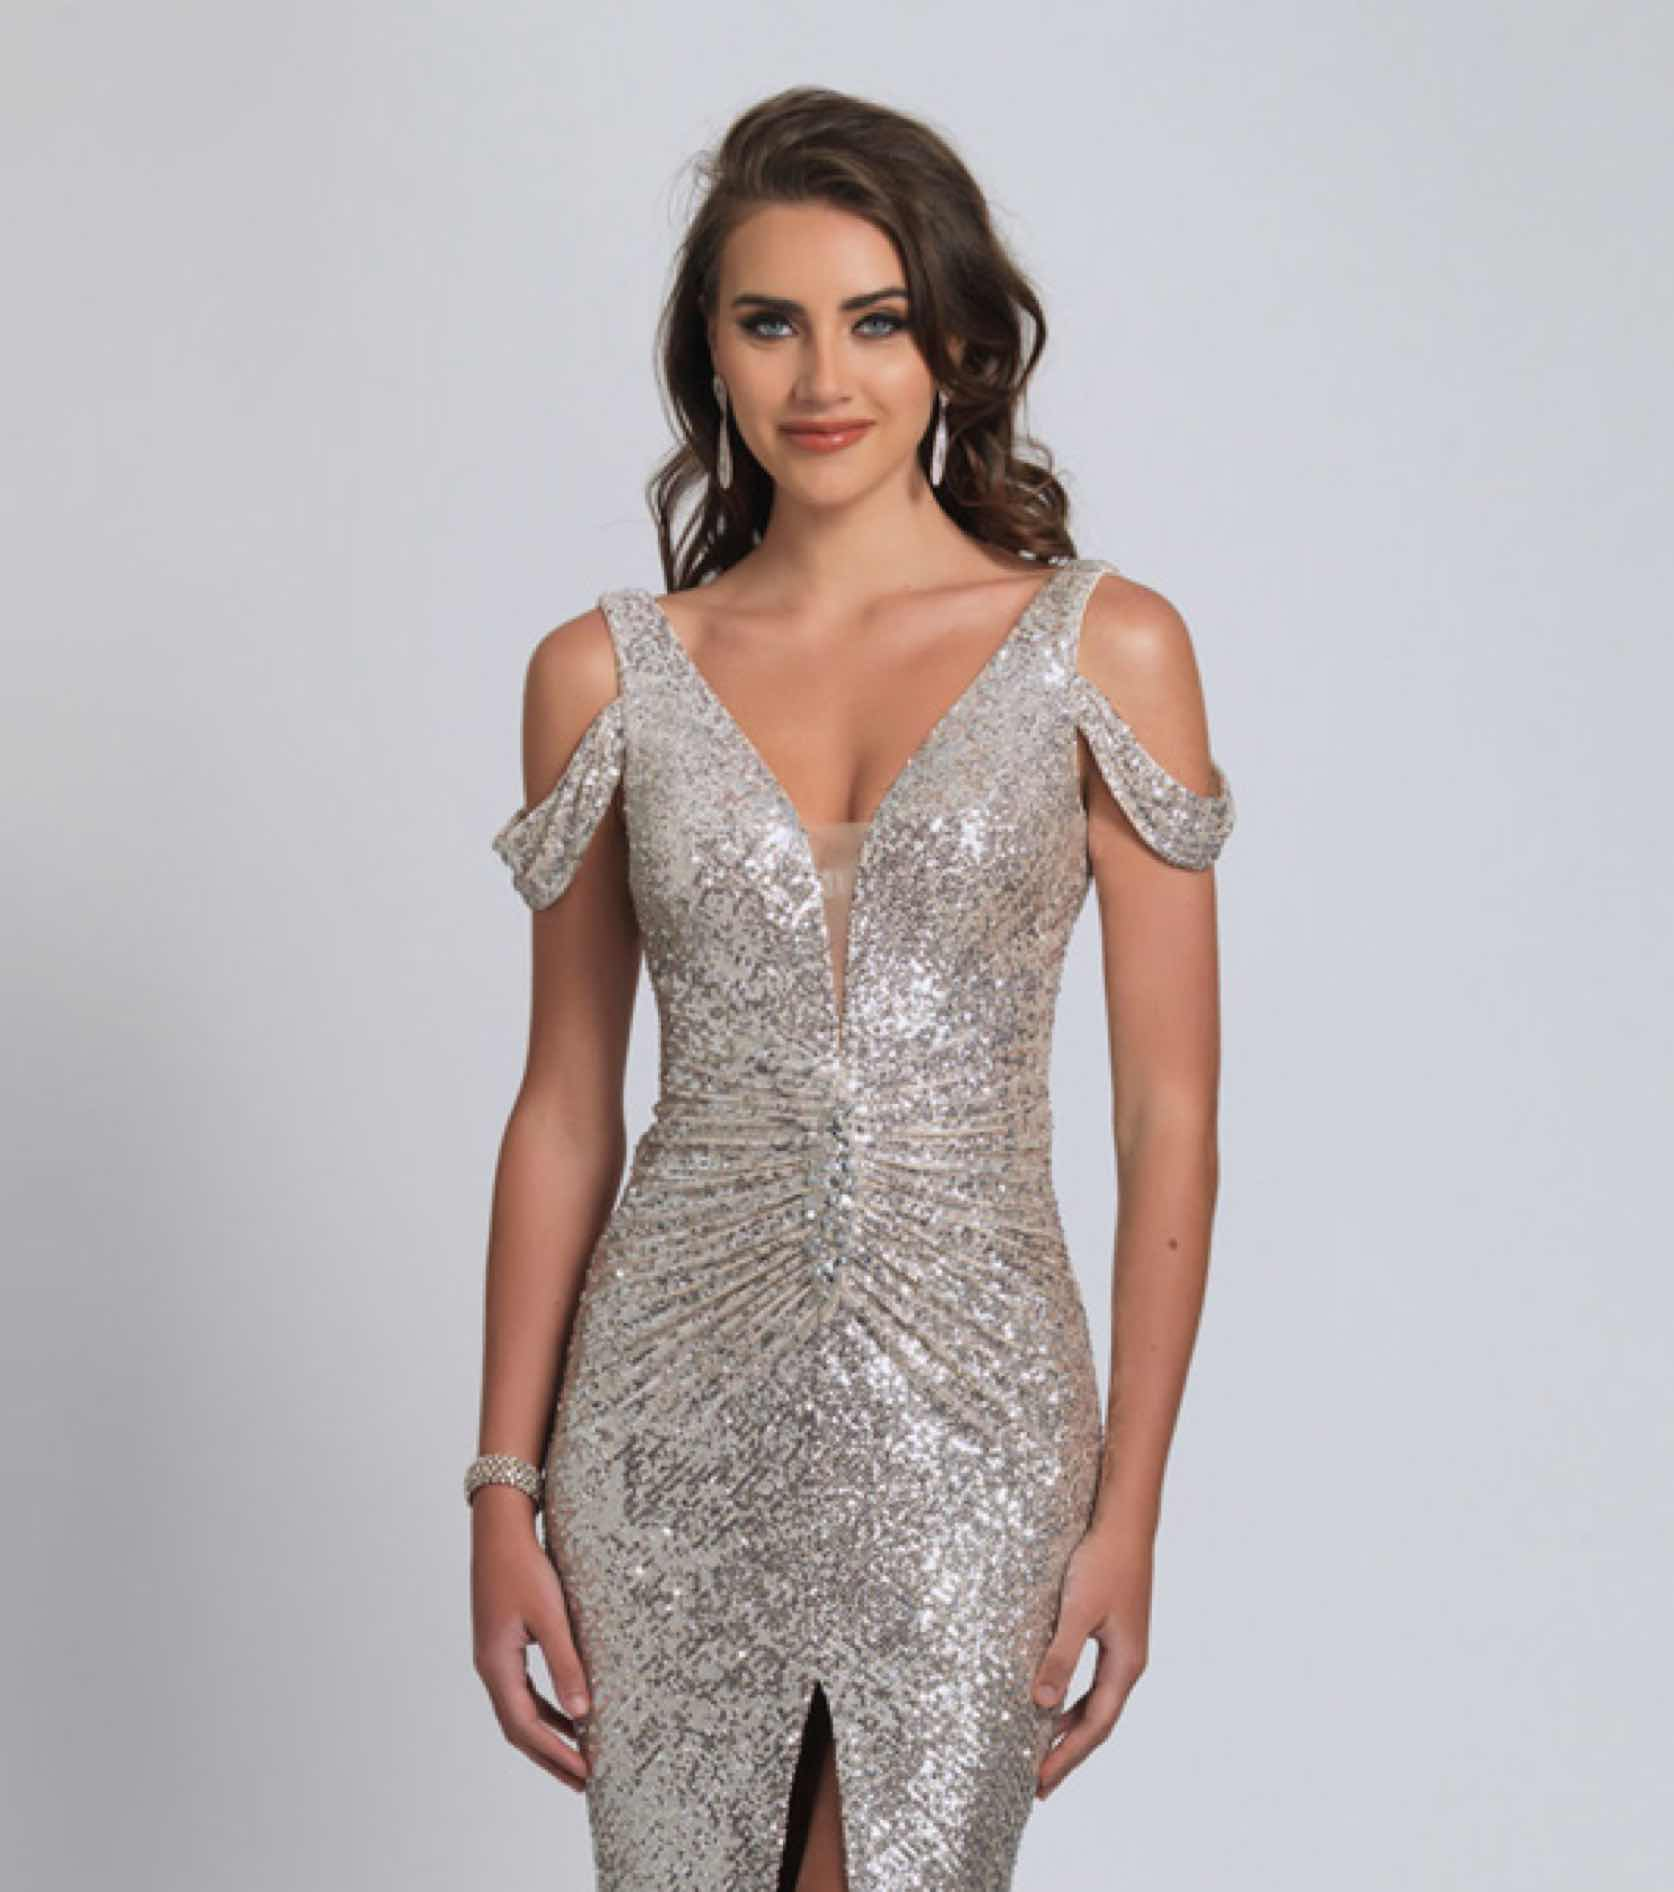 Model in silver sparkly Dave and Johnny dress